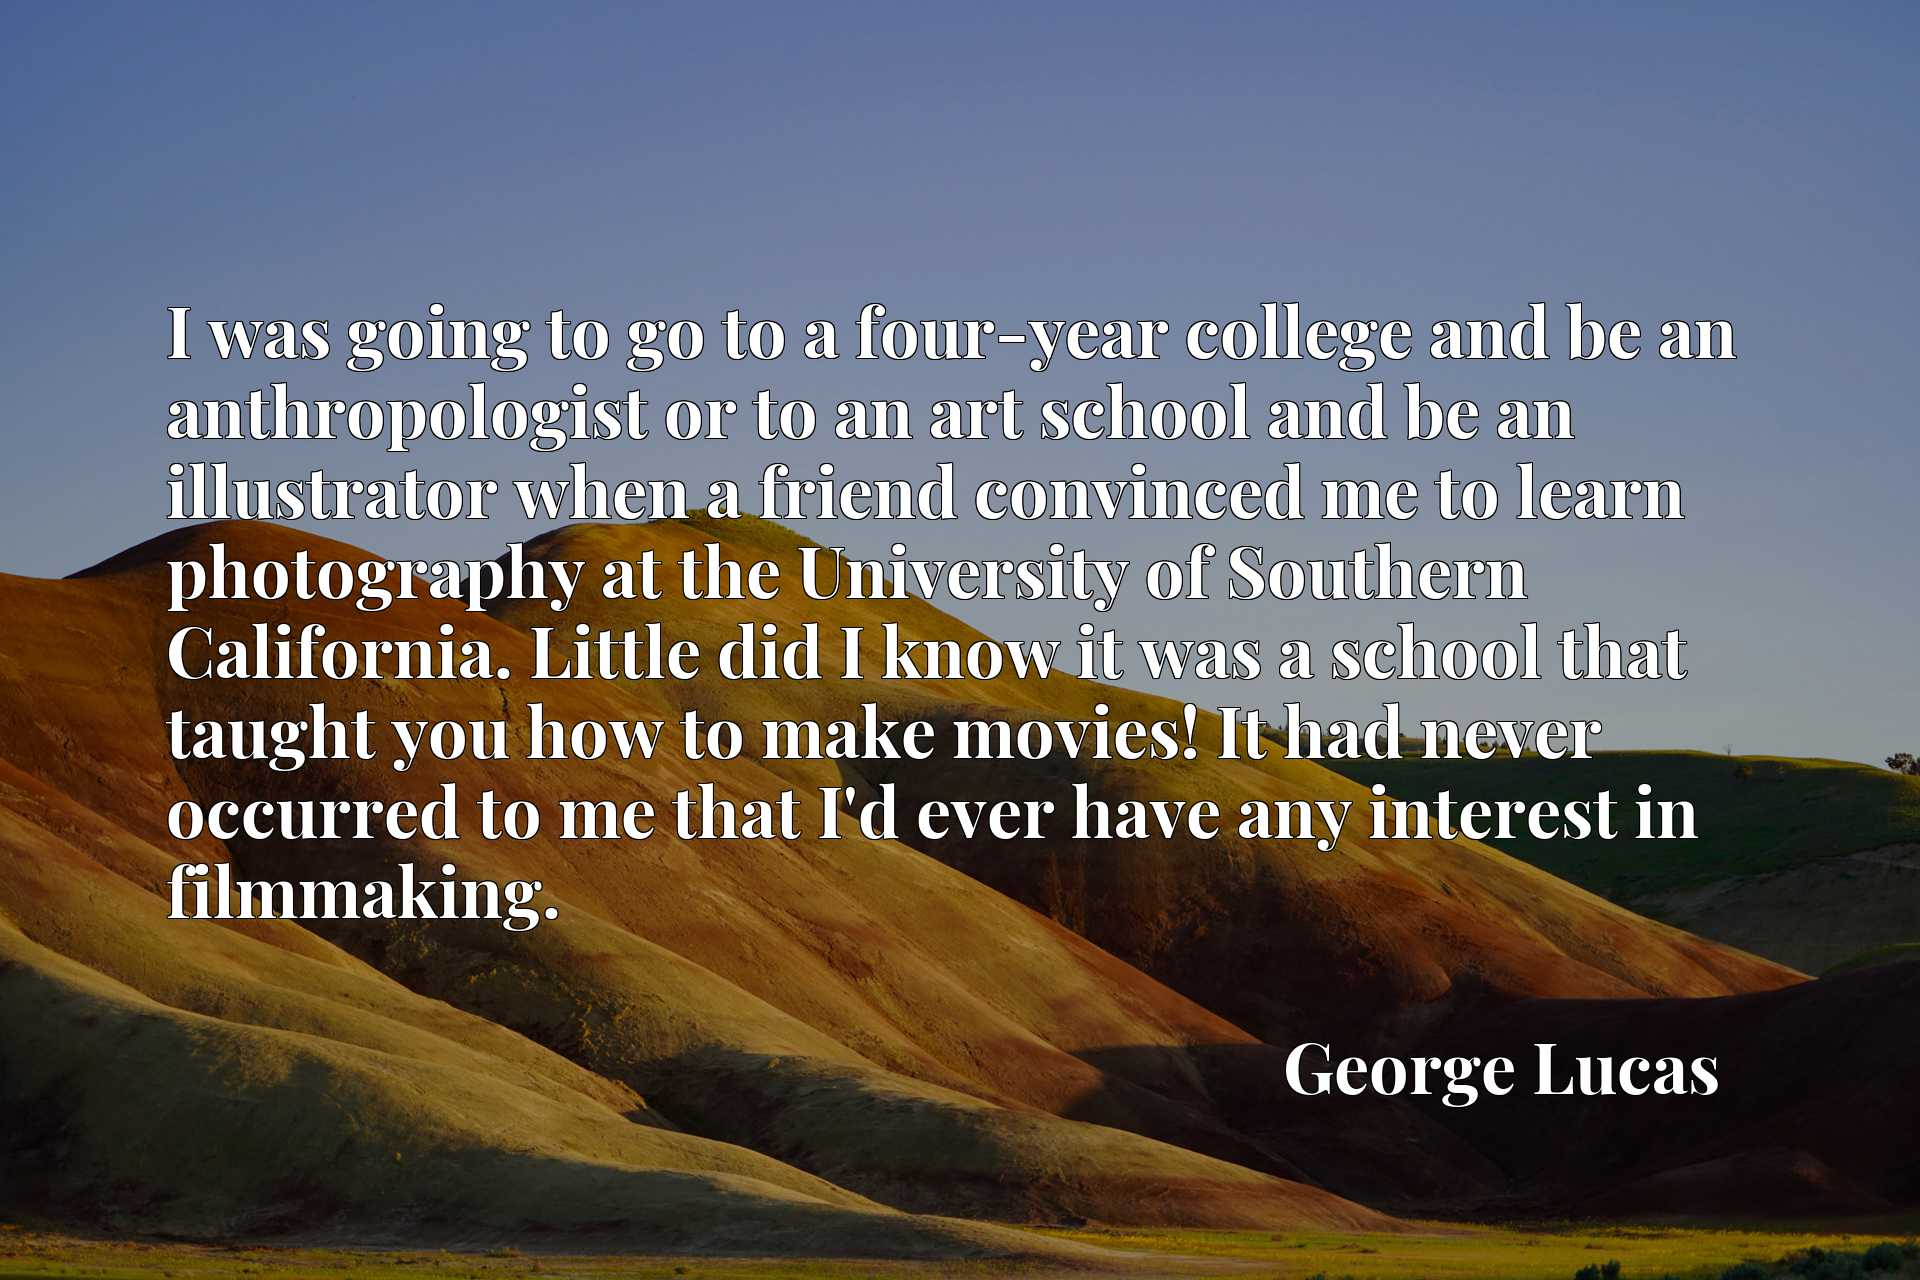 I was going to go to a four-year college and be an anthropologist or to an art school and be an illustrator when a friend convinced me to learn photography at the University of Southern California. Little did I know it was a school that taught you how to make movies! It had never occurred to me that I'd ever have any interest in filmmaking.